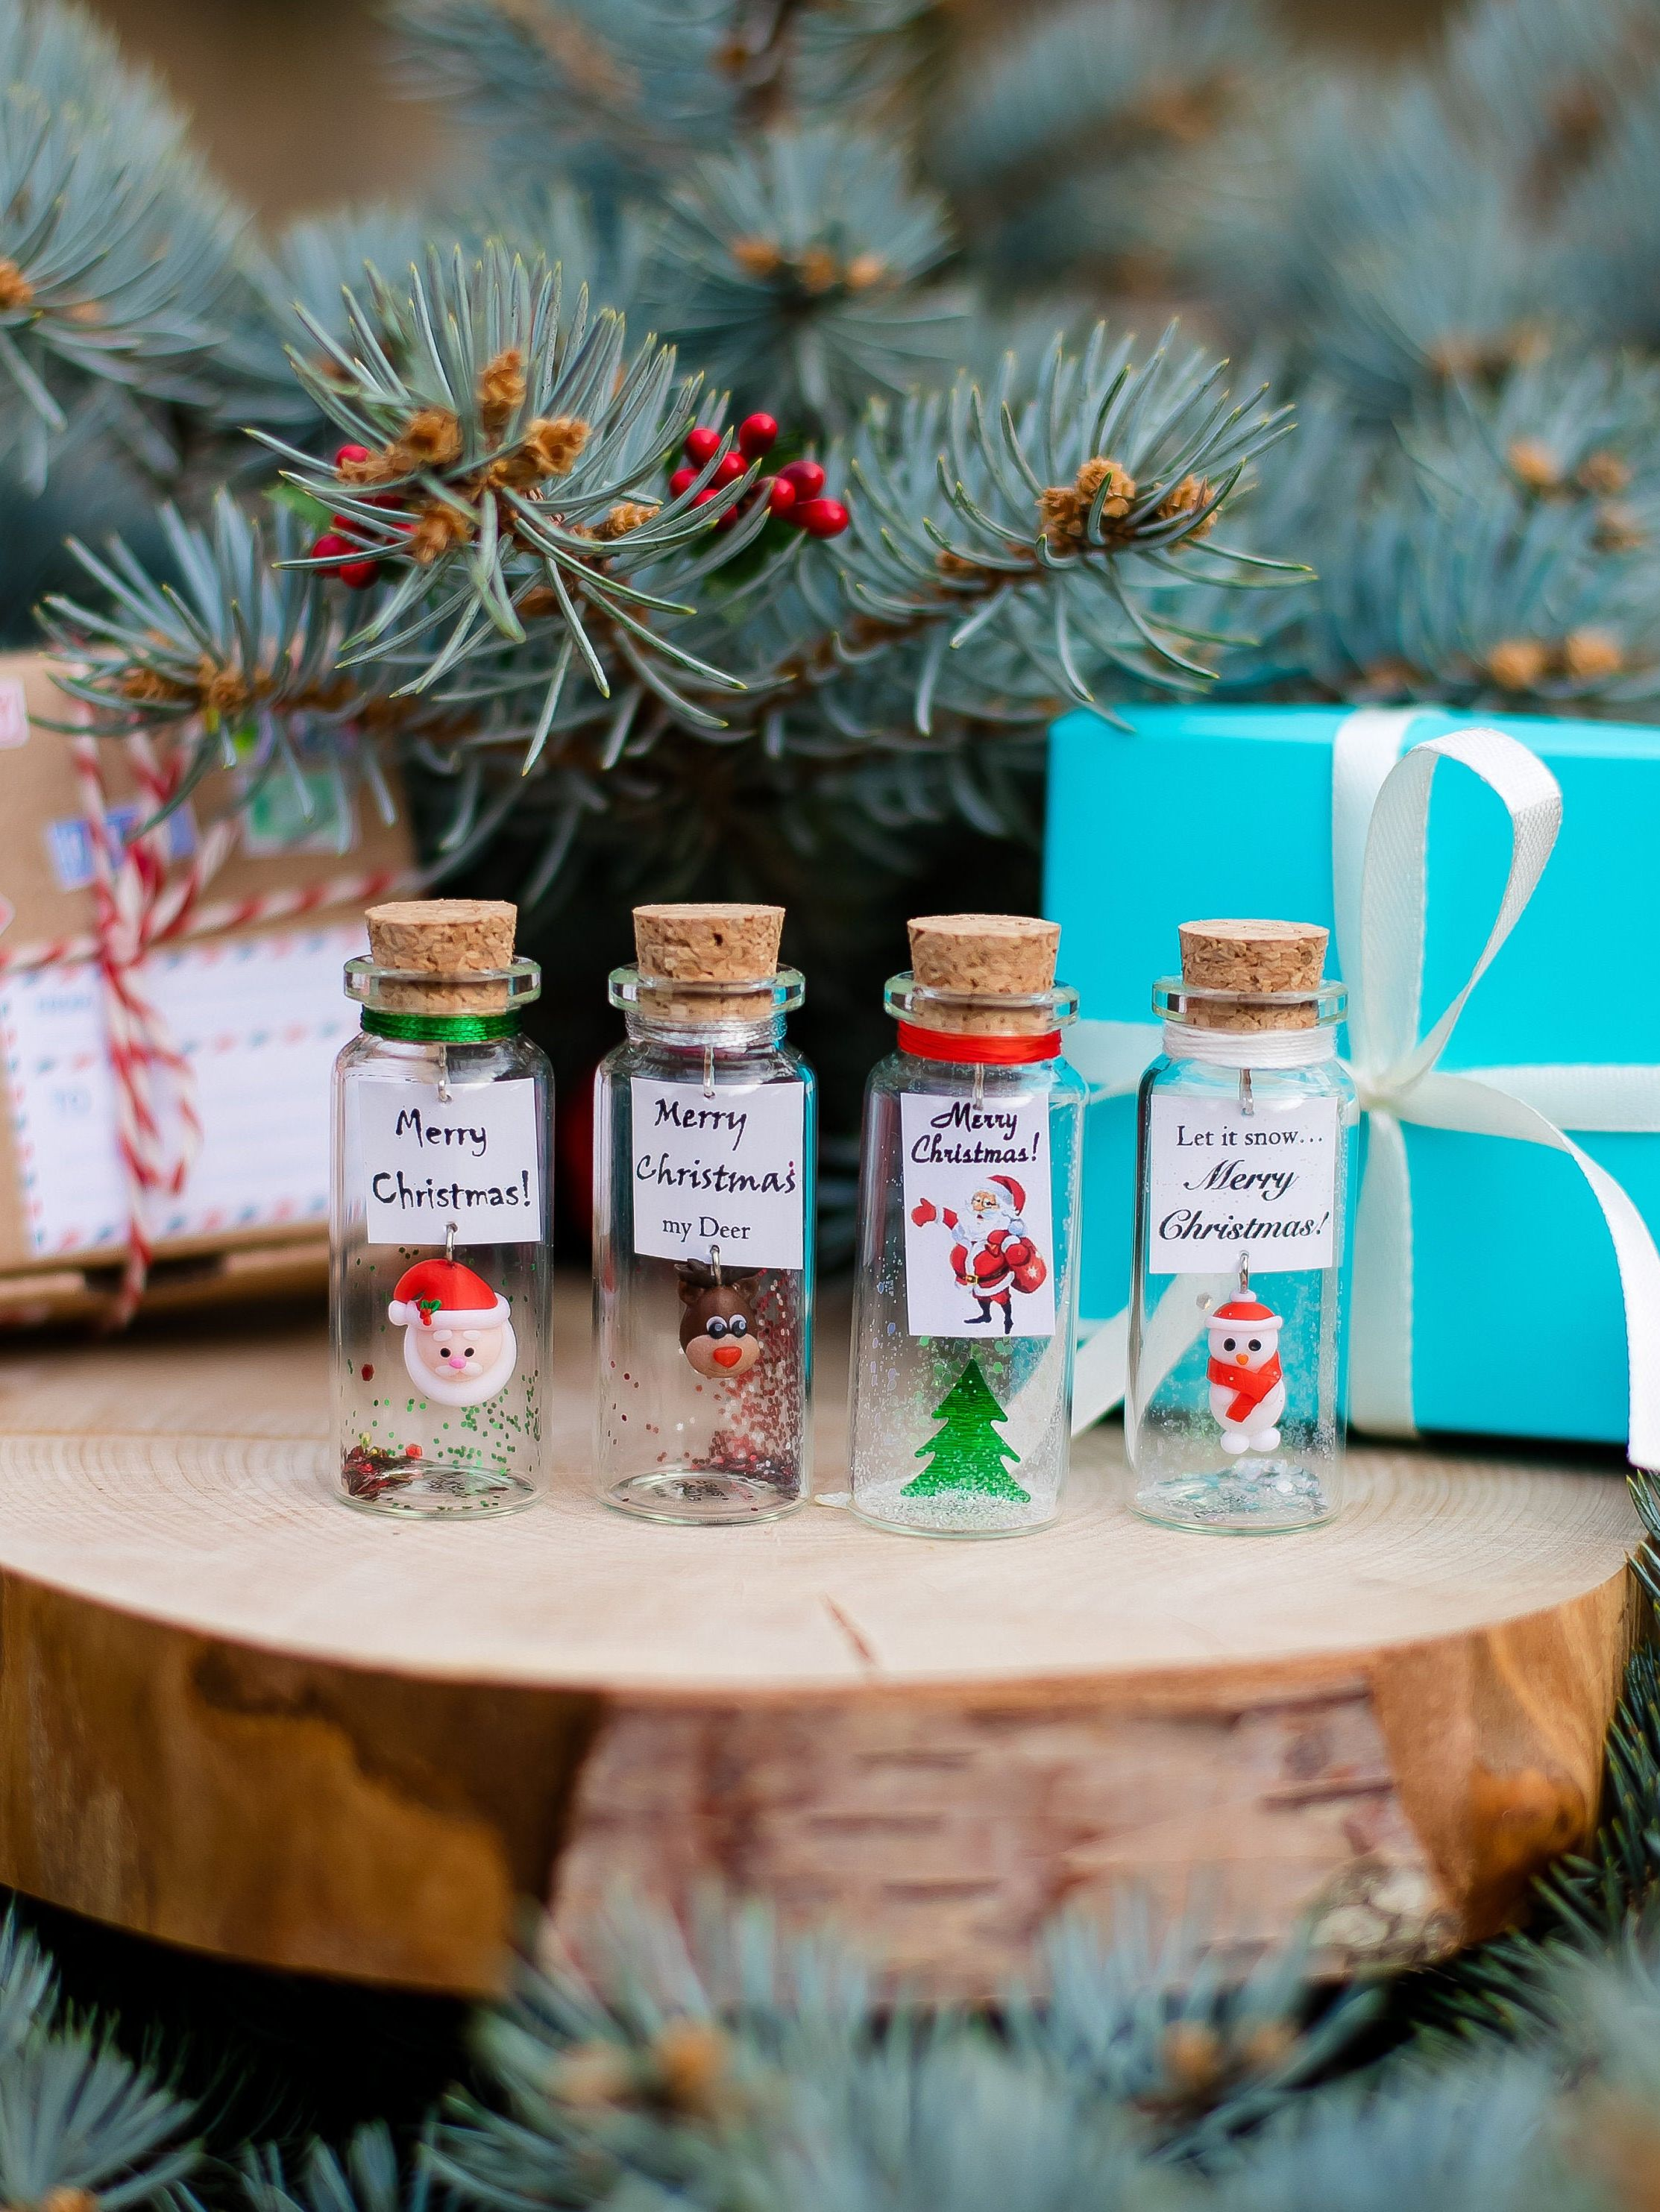 Christmas Gift For Friends Best Friend Gifts Holiday Gift Etsy In 2020 Christmas Gifts For Friends Christmas Gifts For Coworkers Boyfriend Gifts